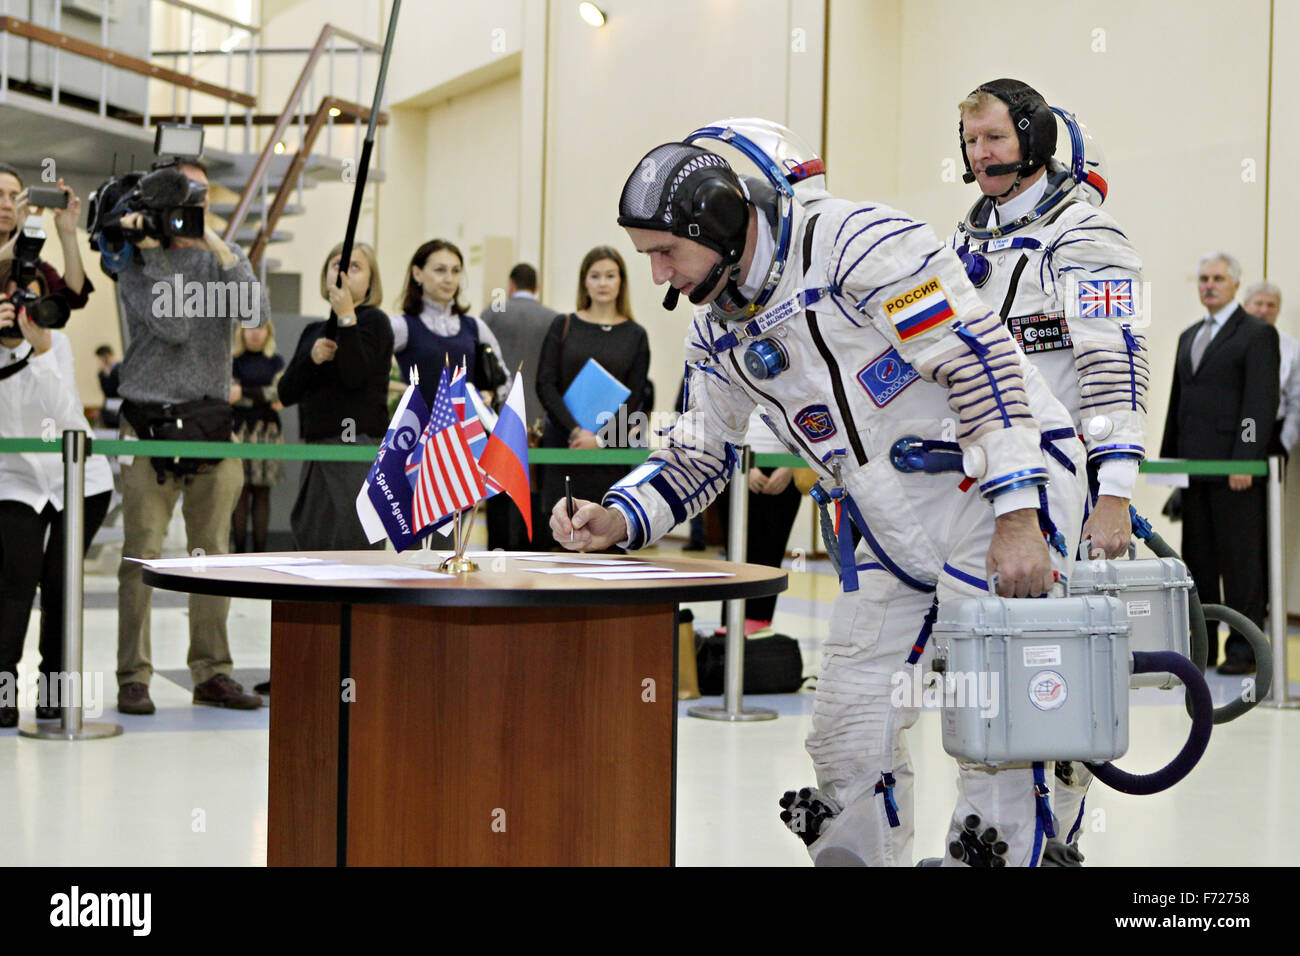 International Space Station Expedition 46 crew member Yuri Malenchenko of the Russian Federal Space Agency signs - Stock Image